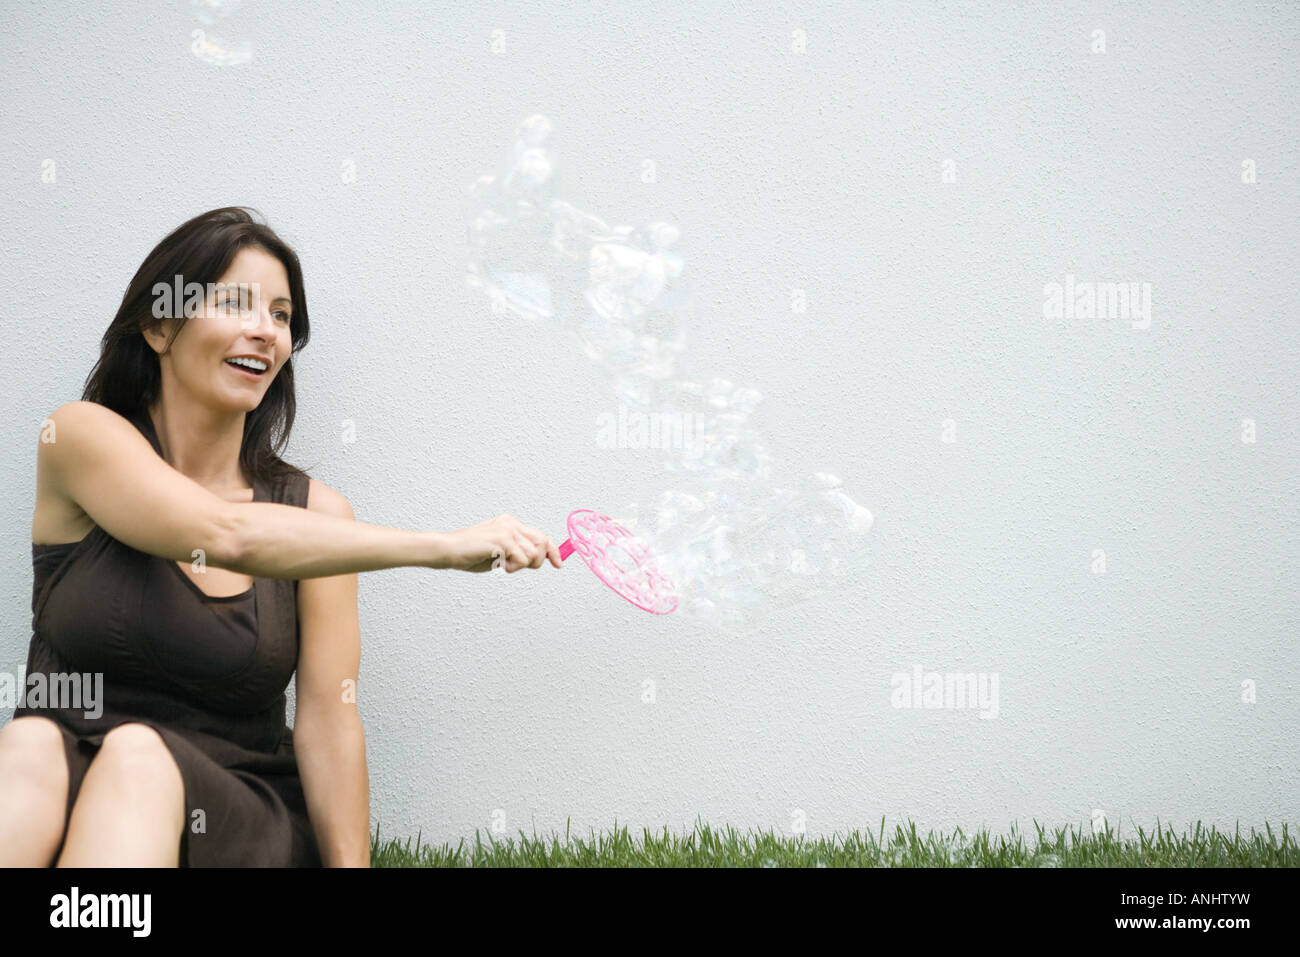 Woman making bubbles with bubble wand - Stock Image